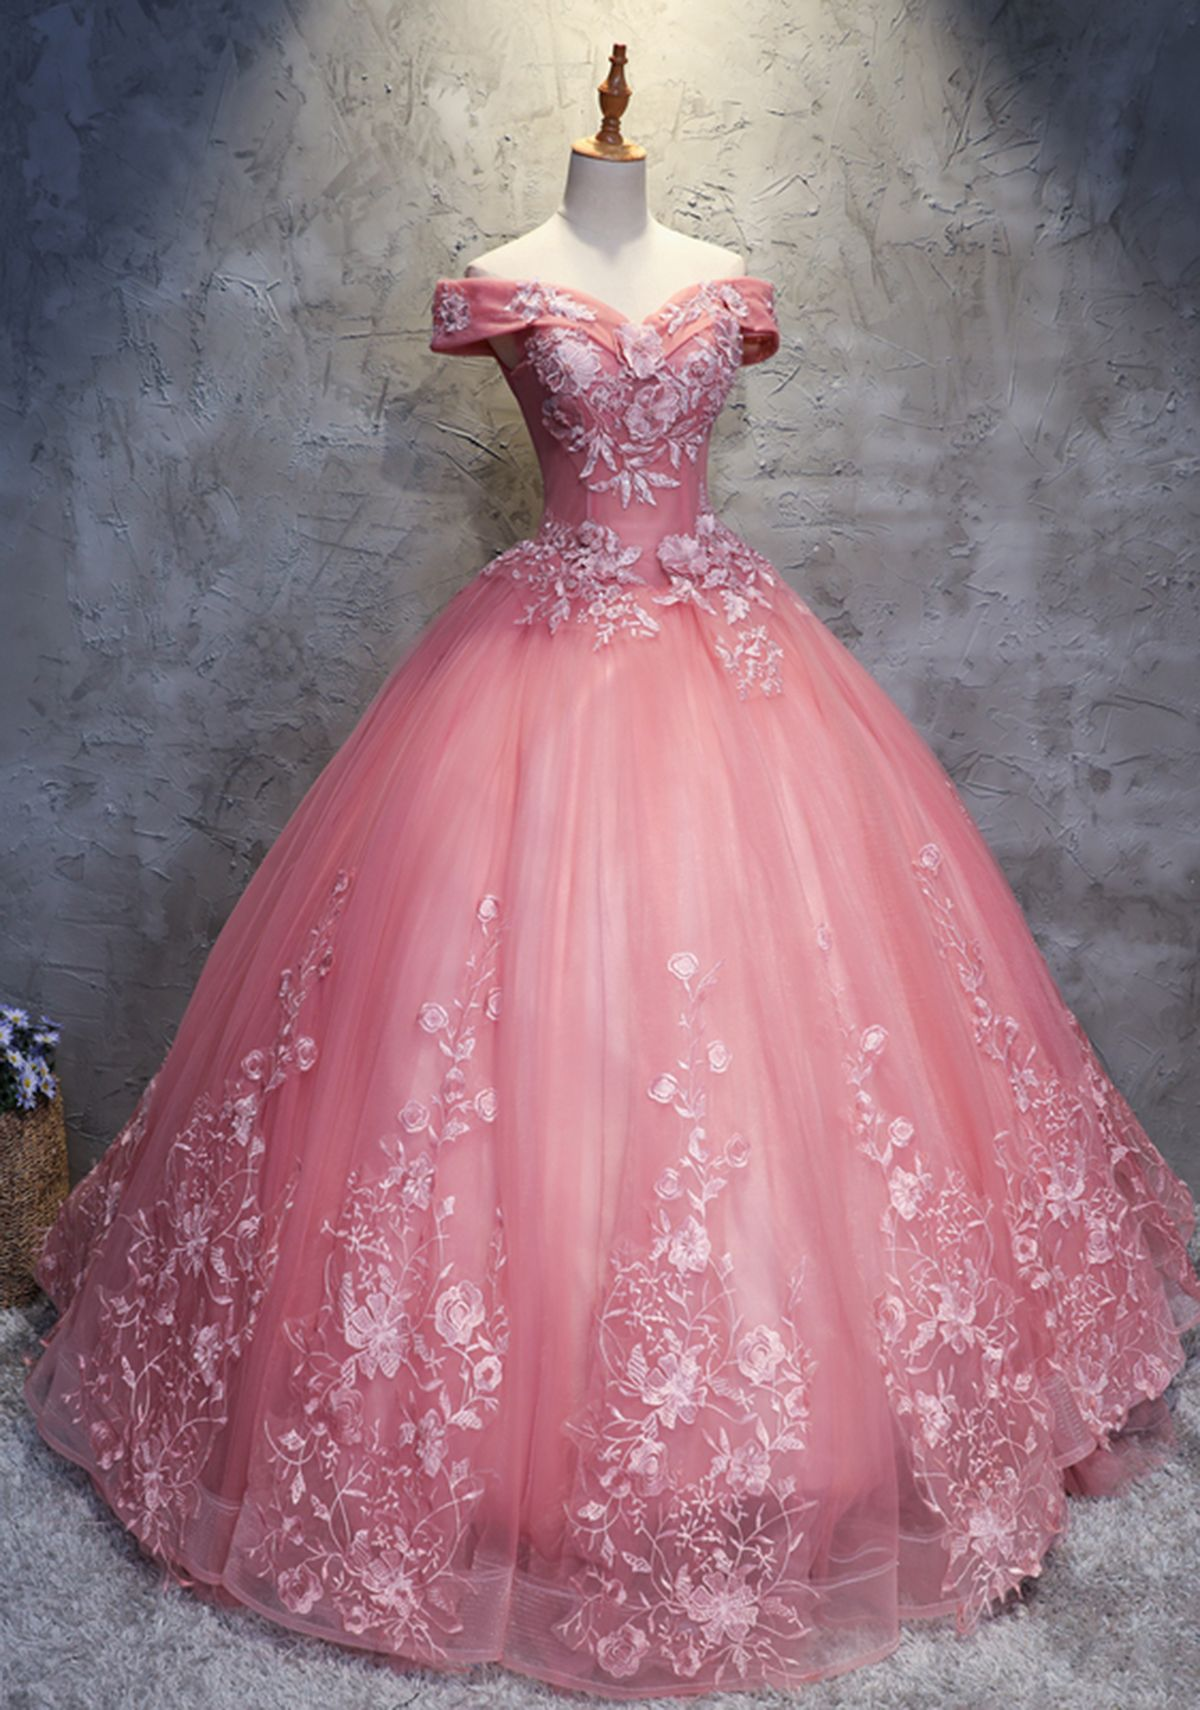 9a641276480f5 2018 off shoulder pink tulle long handmade evening dress, long ball gown ·  loverlovebridal · Online Store Powered by Storenvy